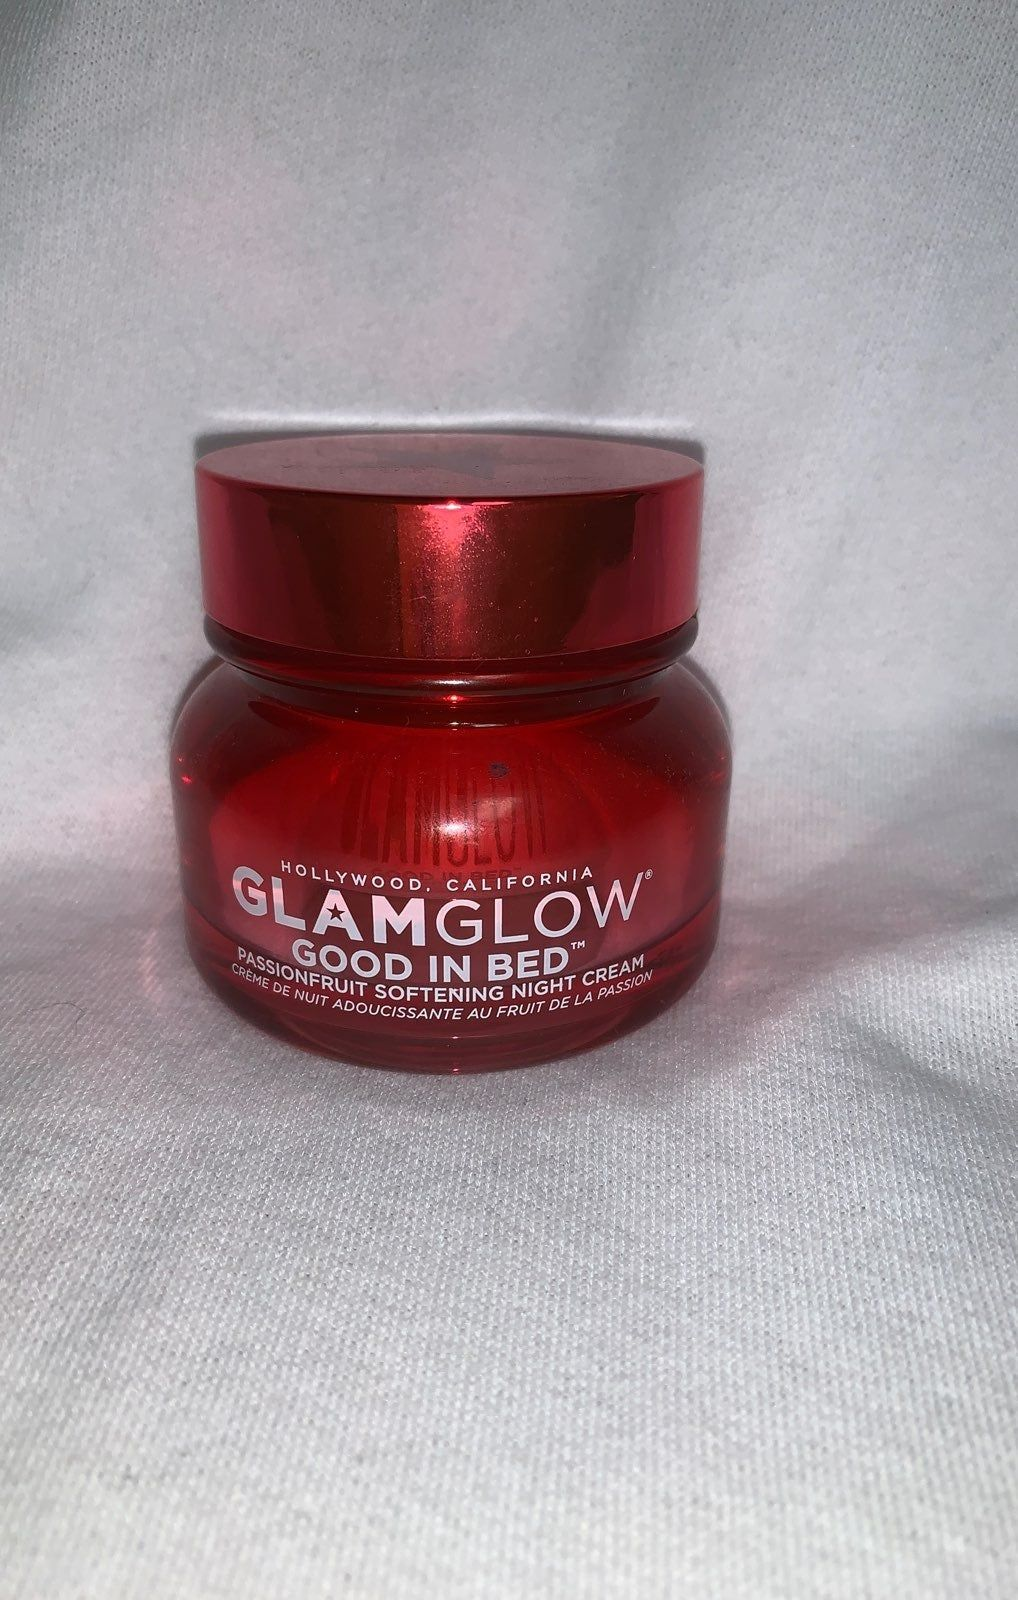 Glamglow Good in Bed Passion fruit softening night cream